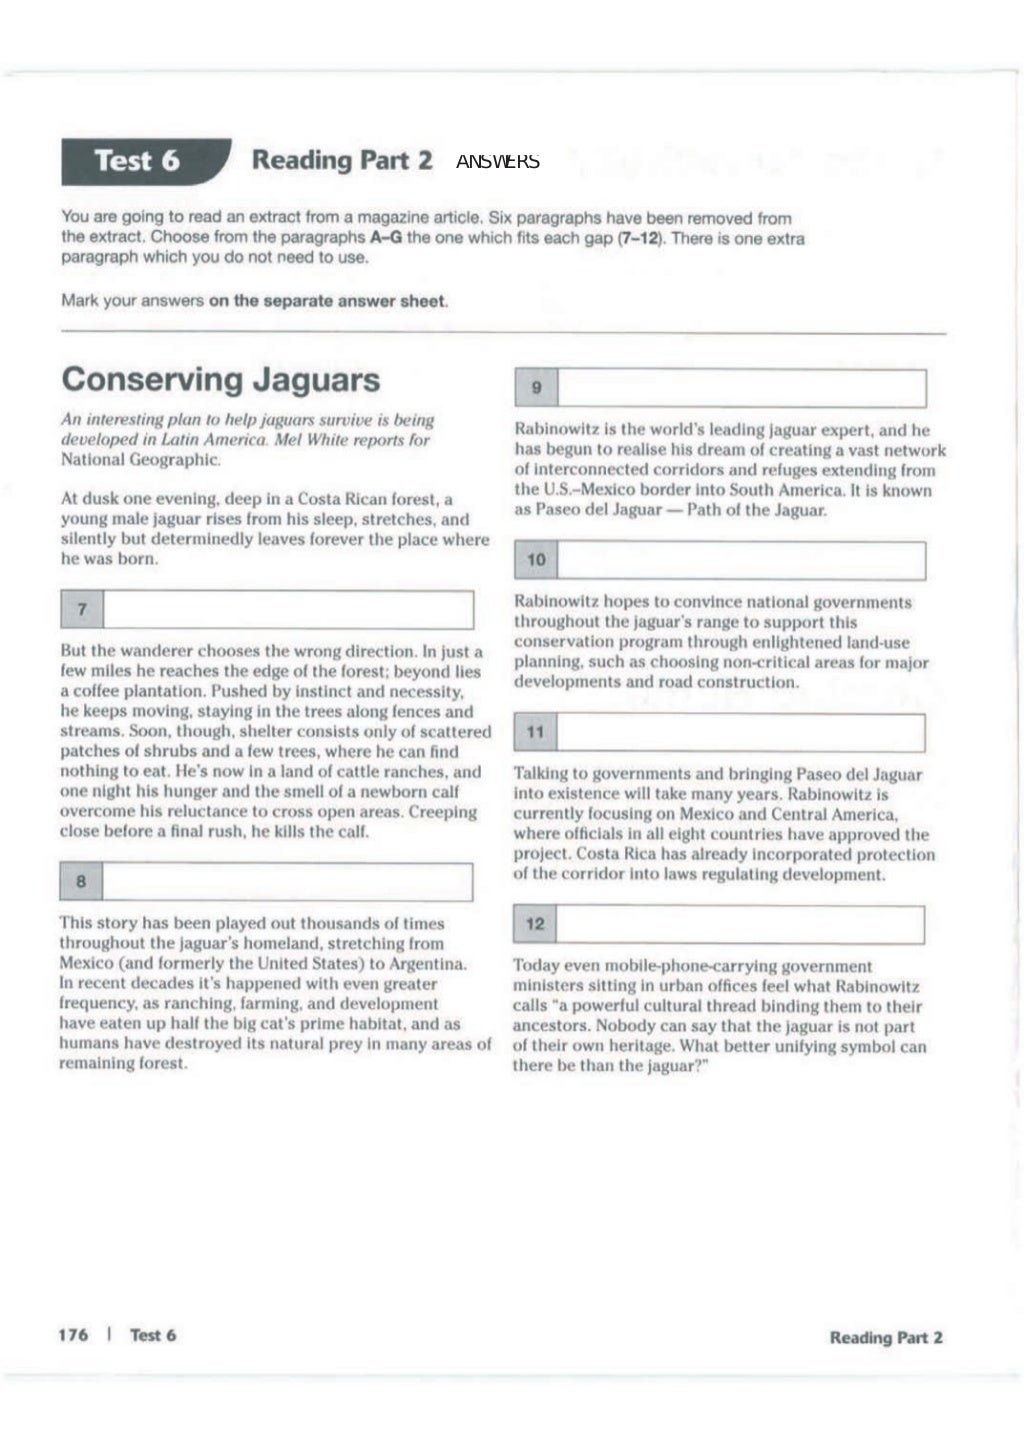 Advanced trainer 6 practice tests with answers book4joy (1) page 177